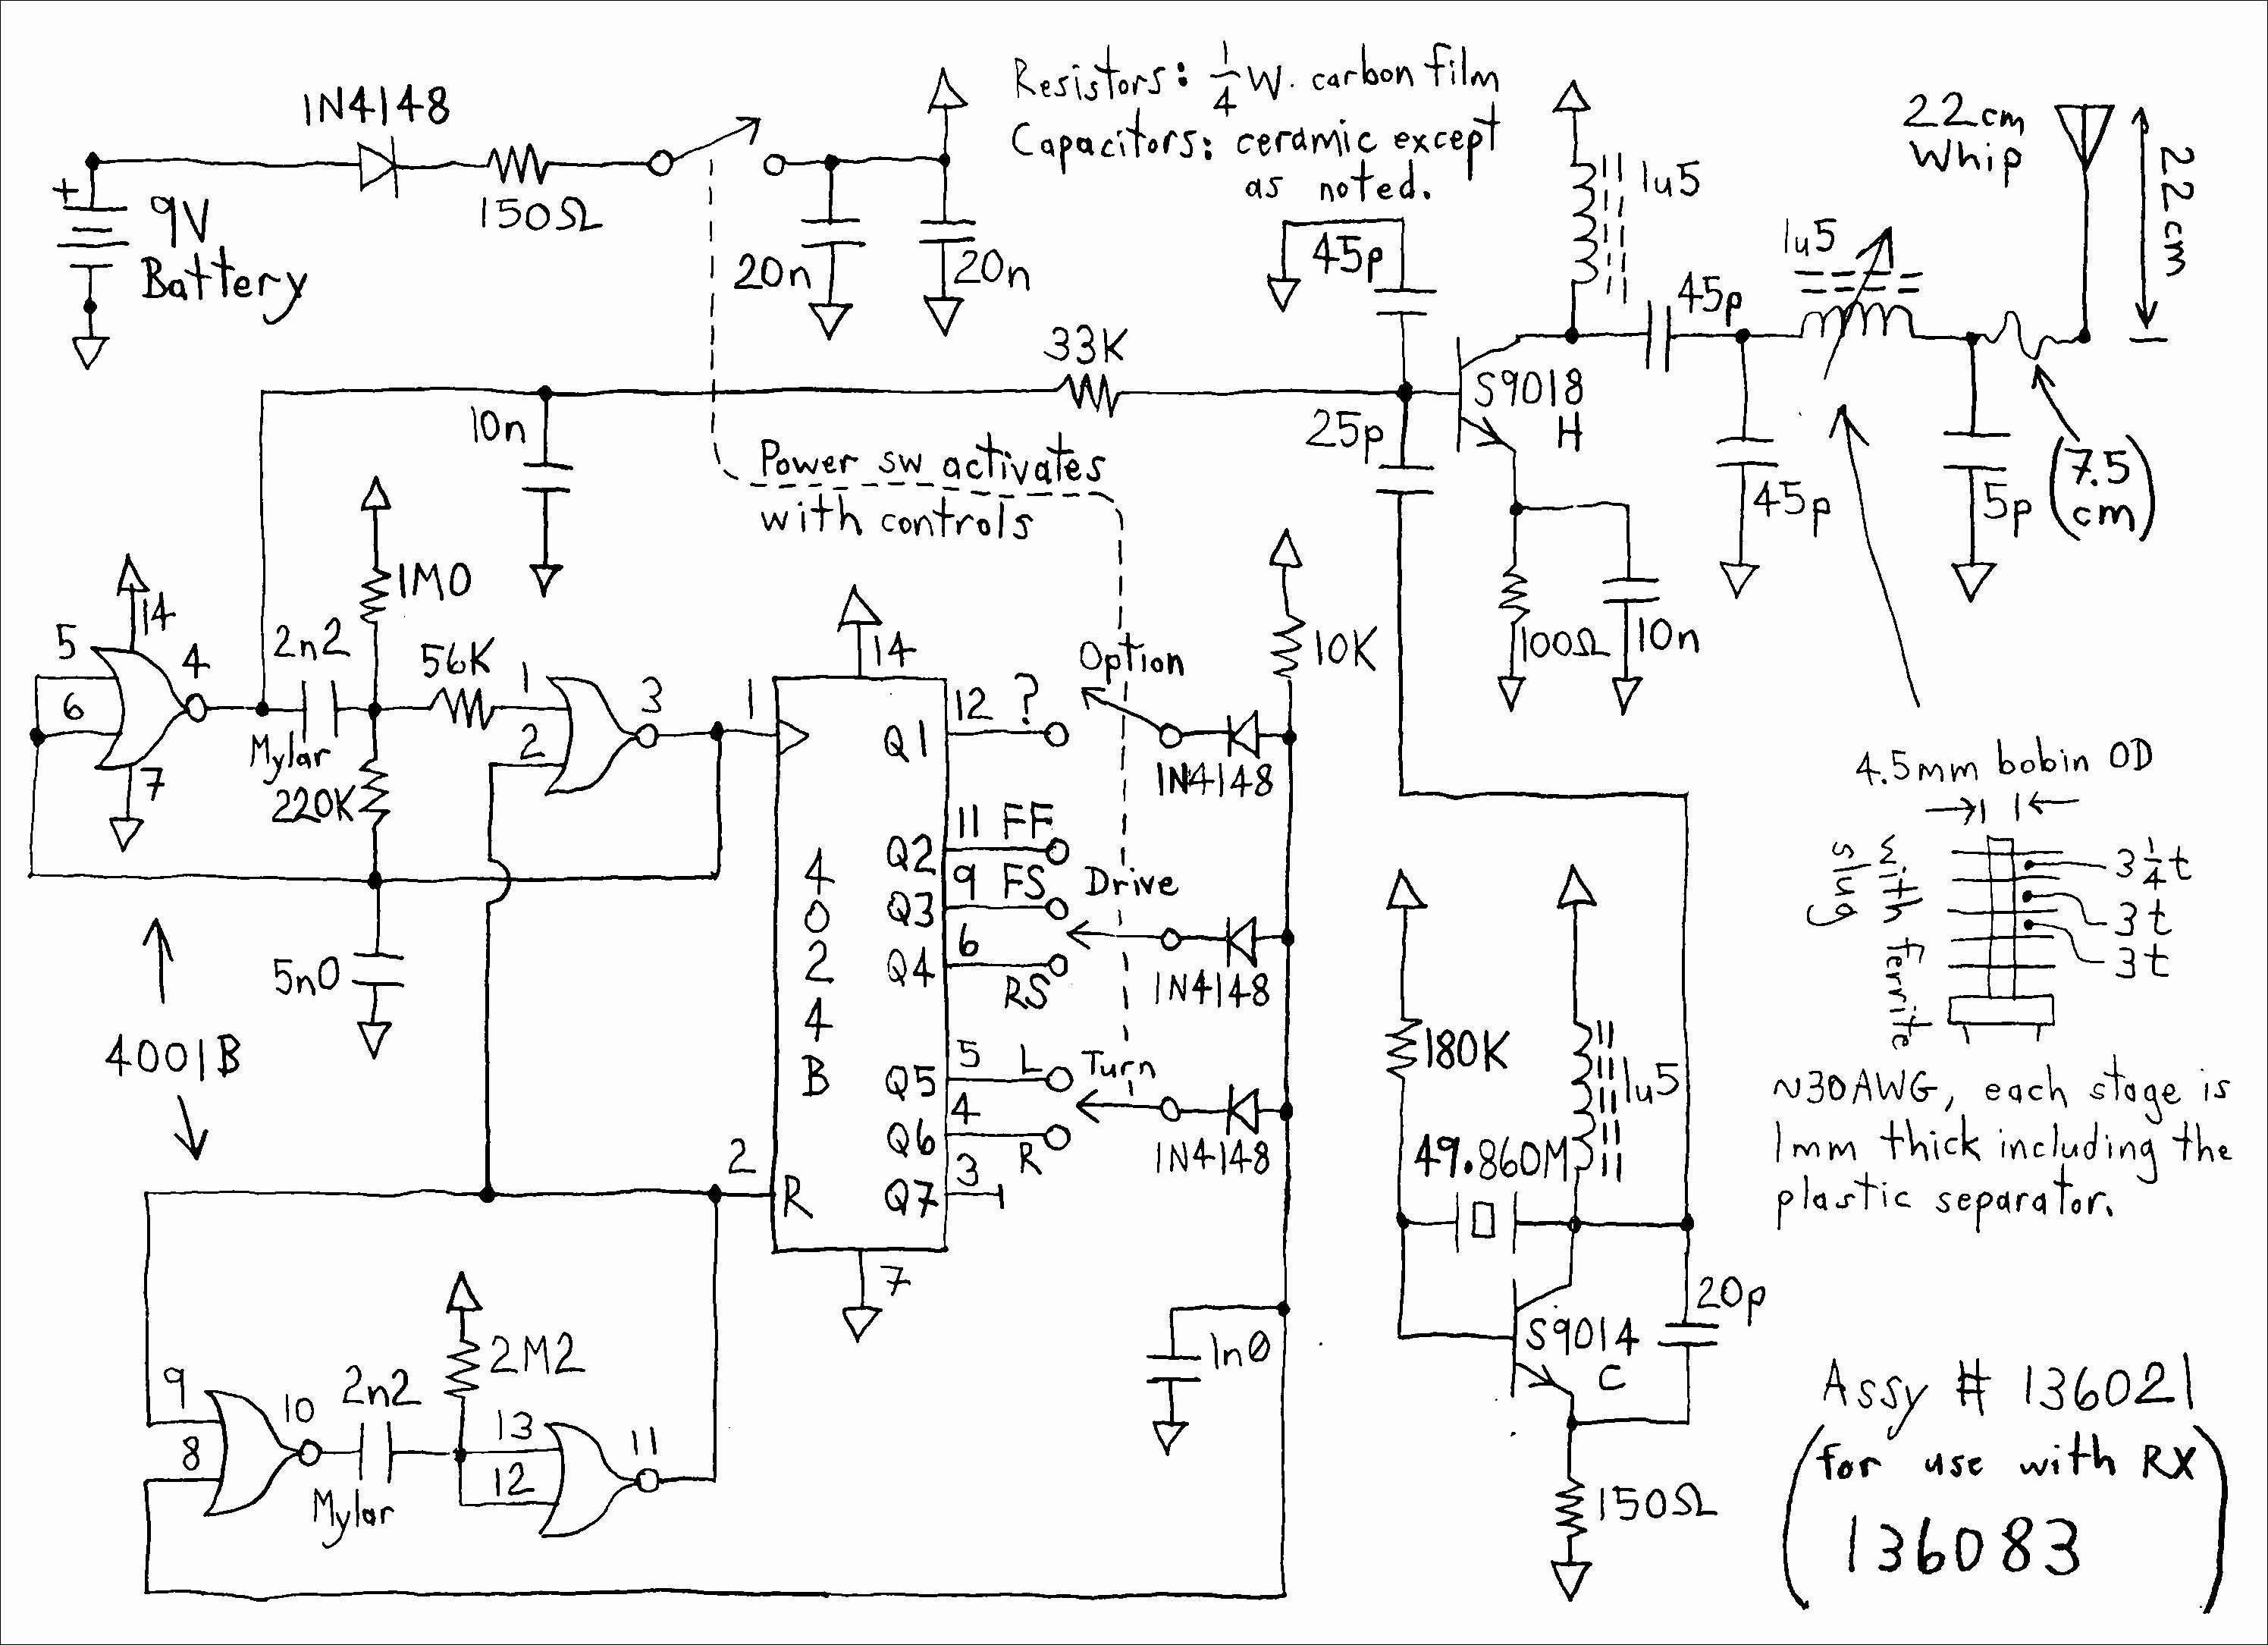 Remote Car Starter Wiring Diagram solar Vehicle Wiring Diagram Detailed Schematic Diagrams Of Remote Car Starter Wiring Diagram